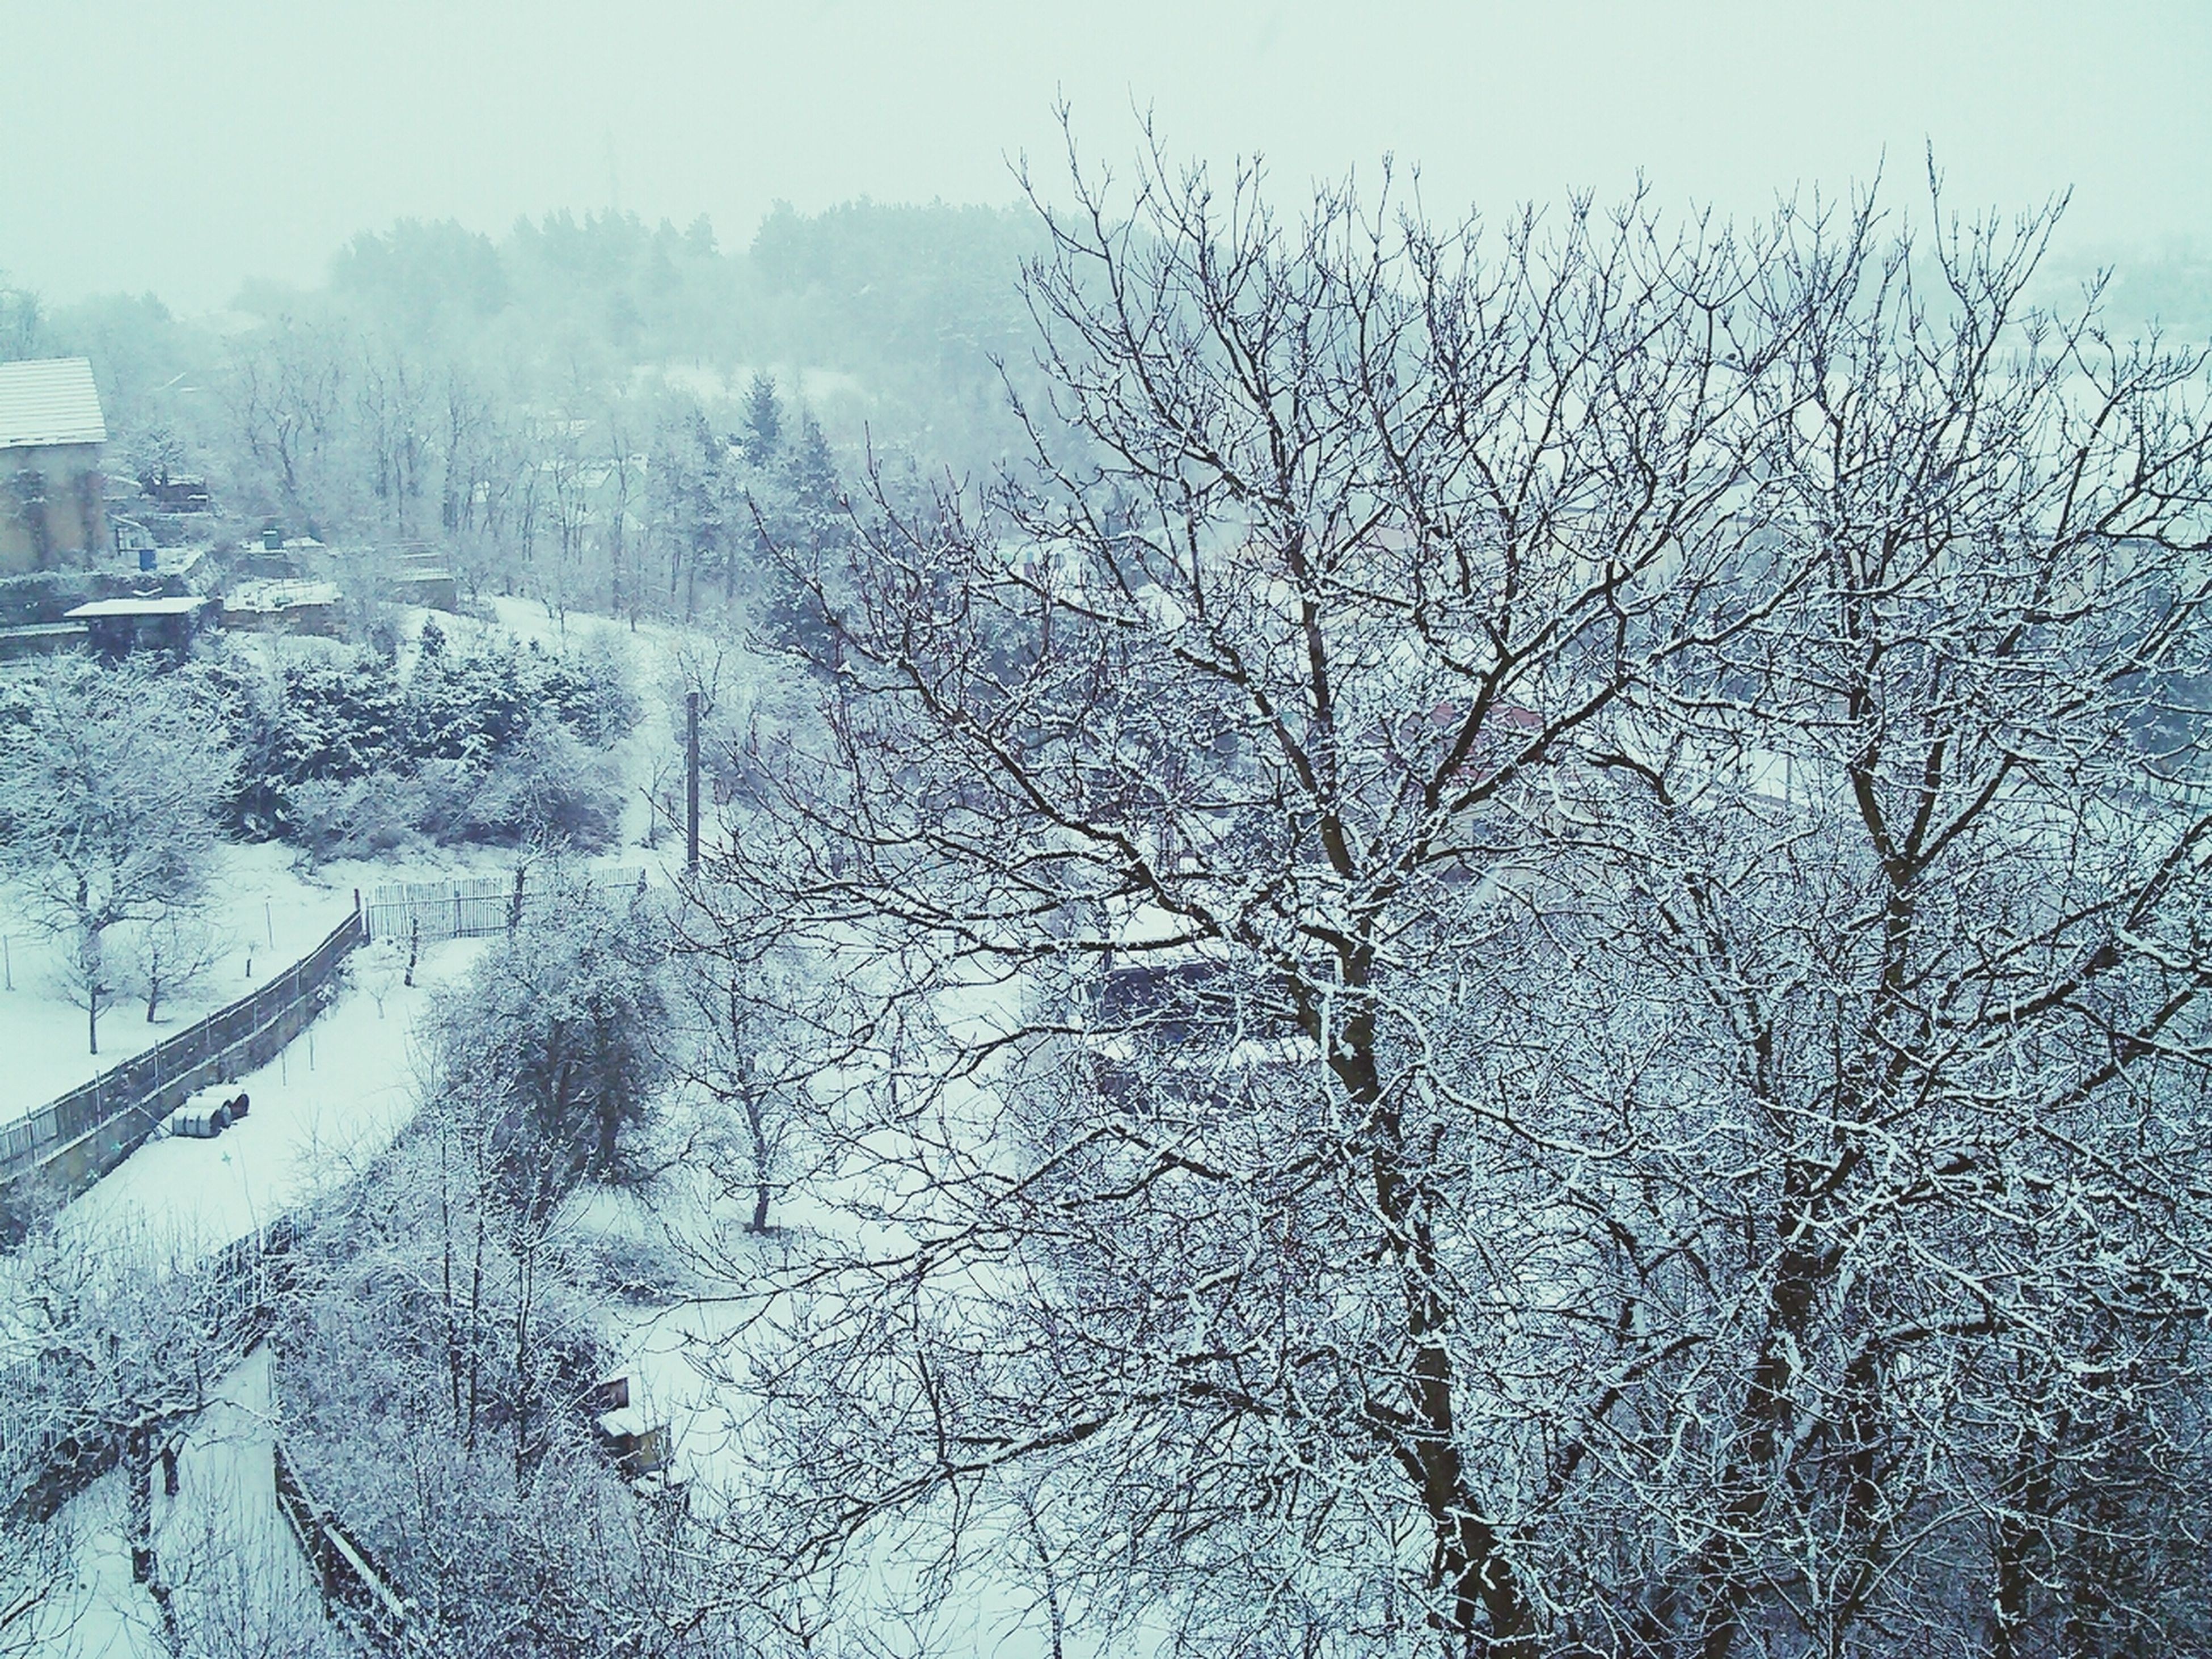 winter, cold temperature, snow, season, weather, bare tree, frozen, tree, covering, nature, building exterior, branch, tranquility, built structure, architecture, clear sky, day, beauty in nature, sky, water